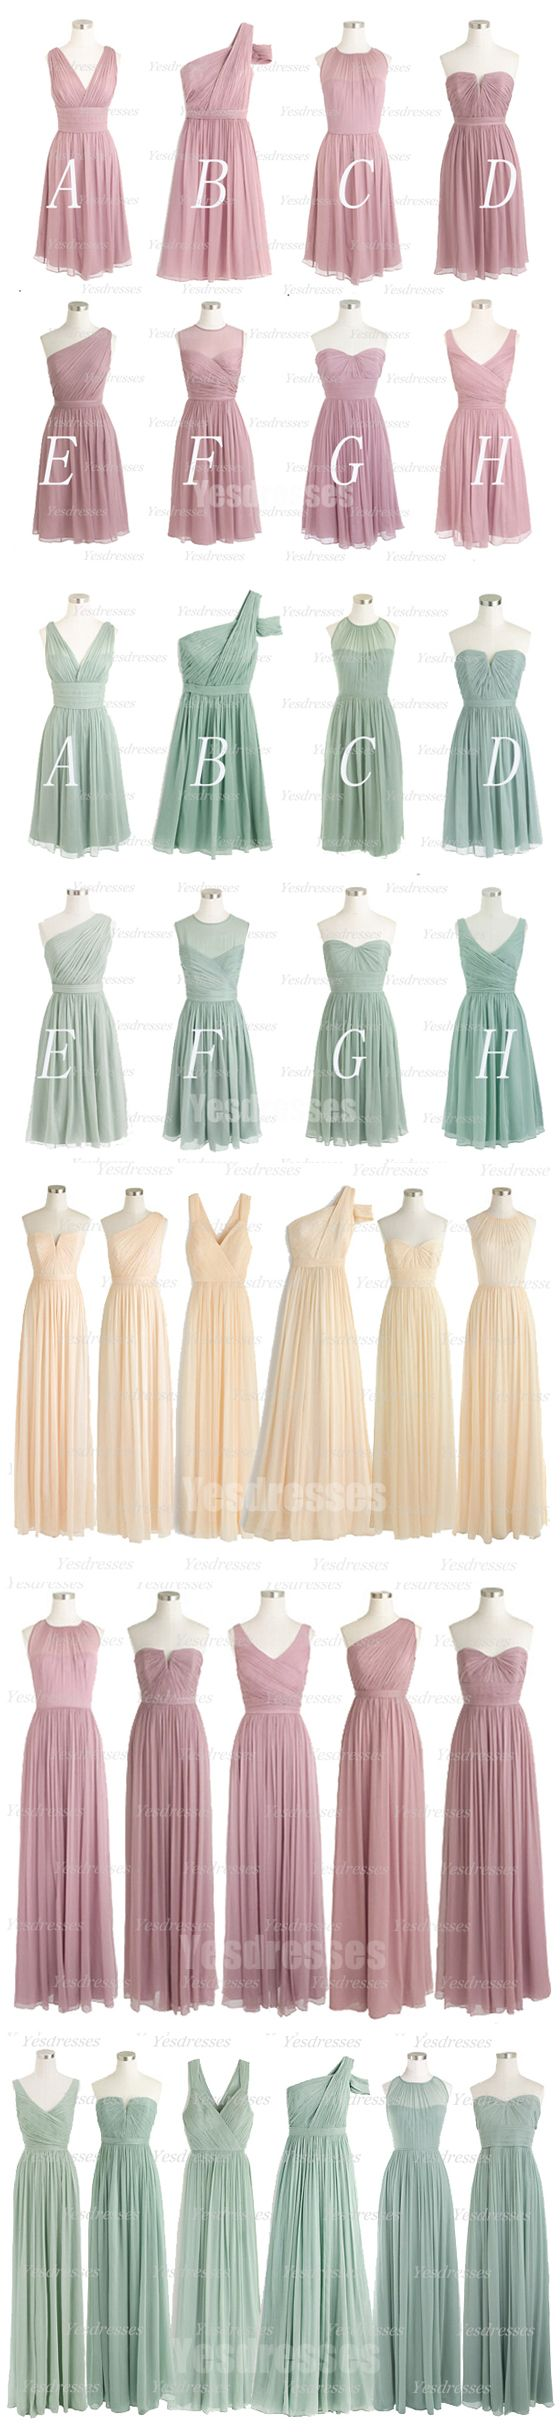 Wow!! So many styles!! Ilove the colors!! Long/short mismatched bridesmaid dresses. Cheap wedding party dresses. Chiffon dresses for maids of honor.